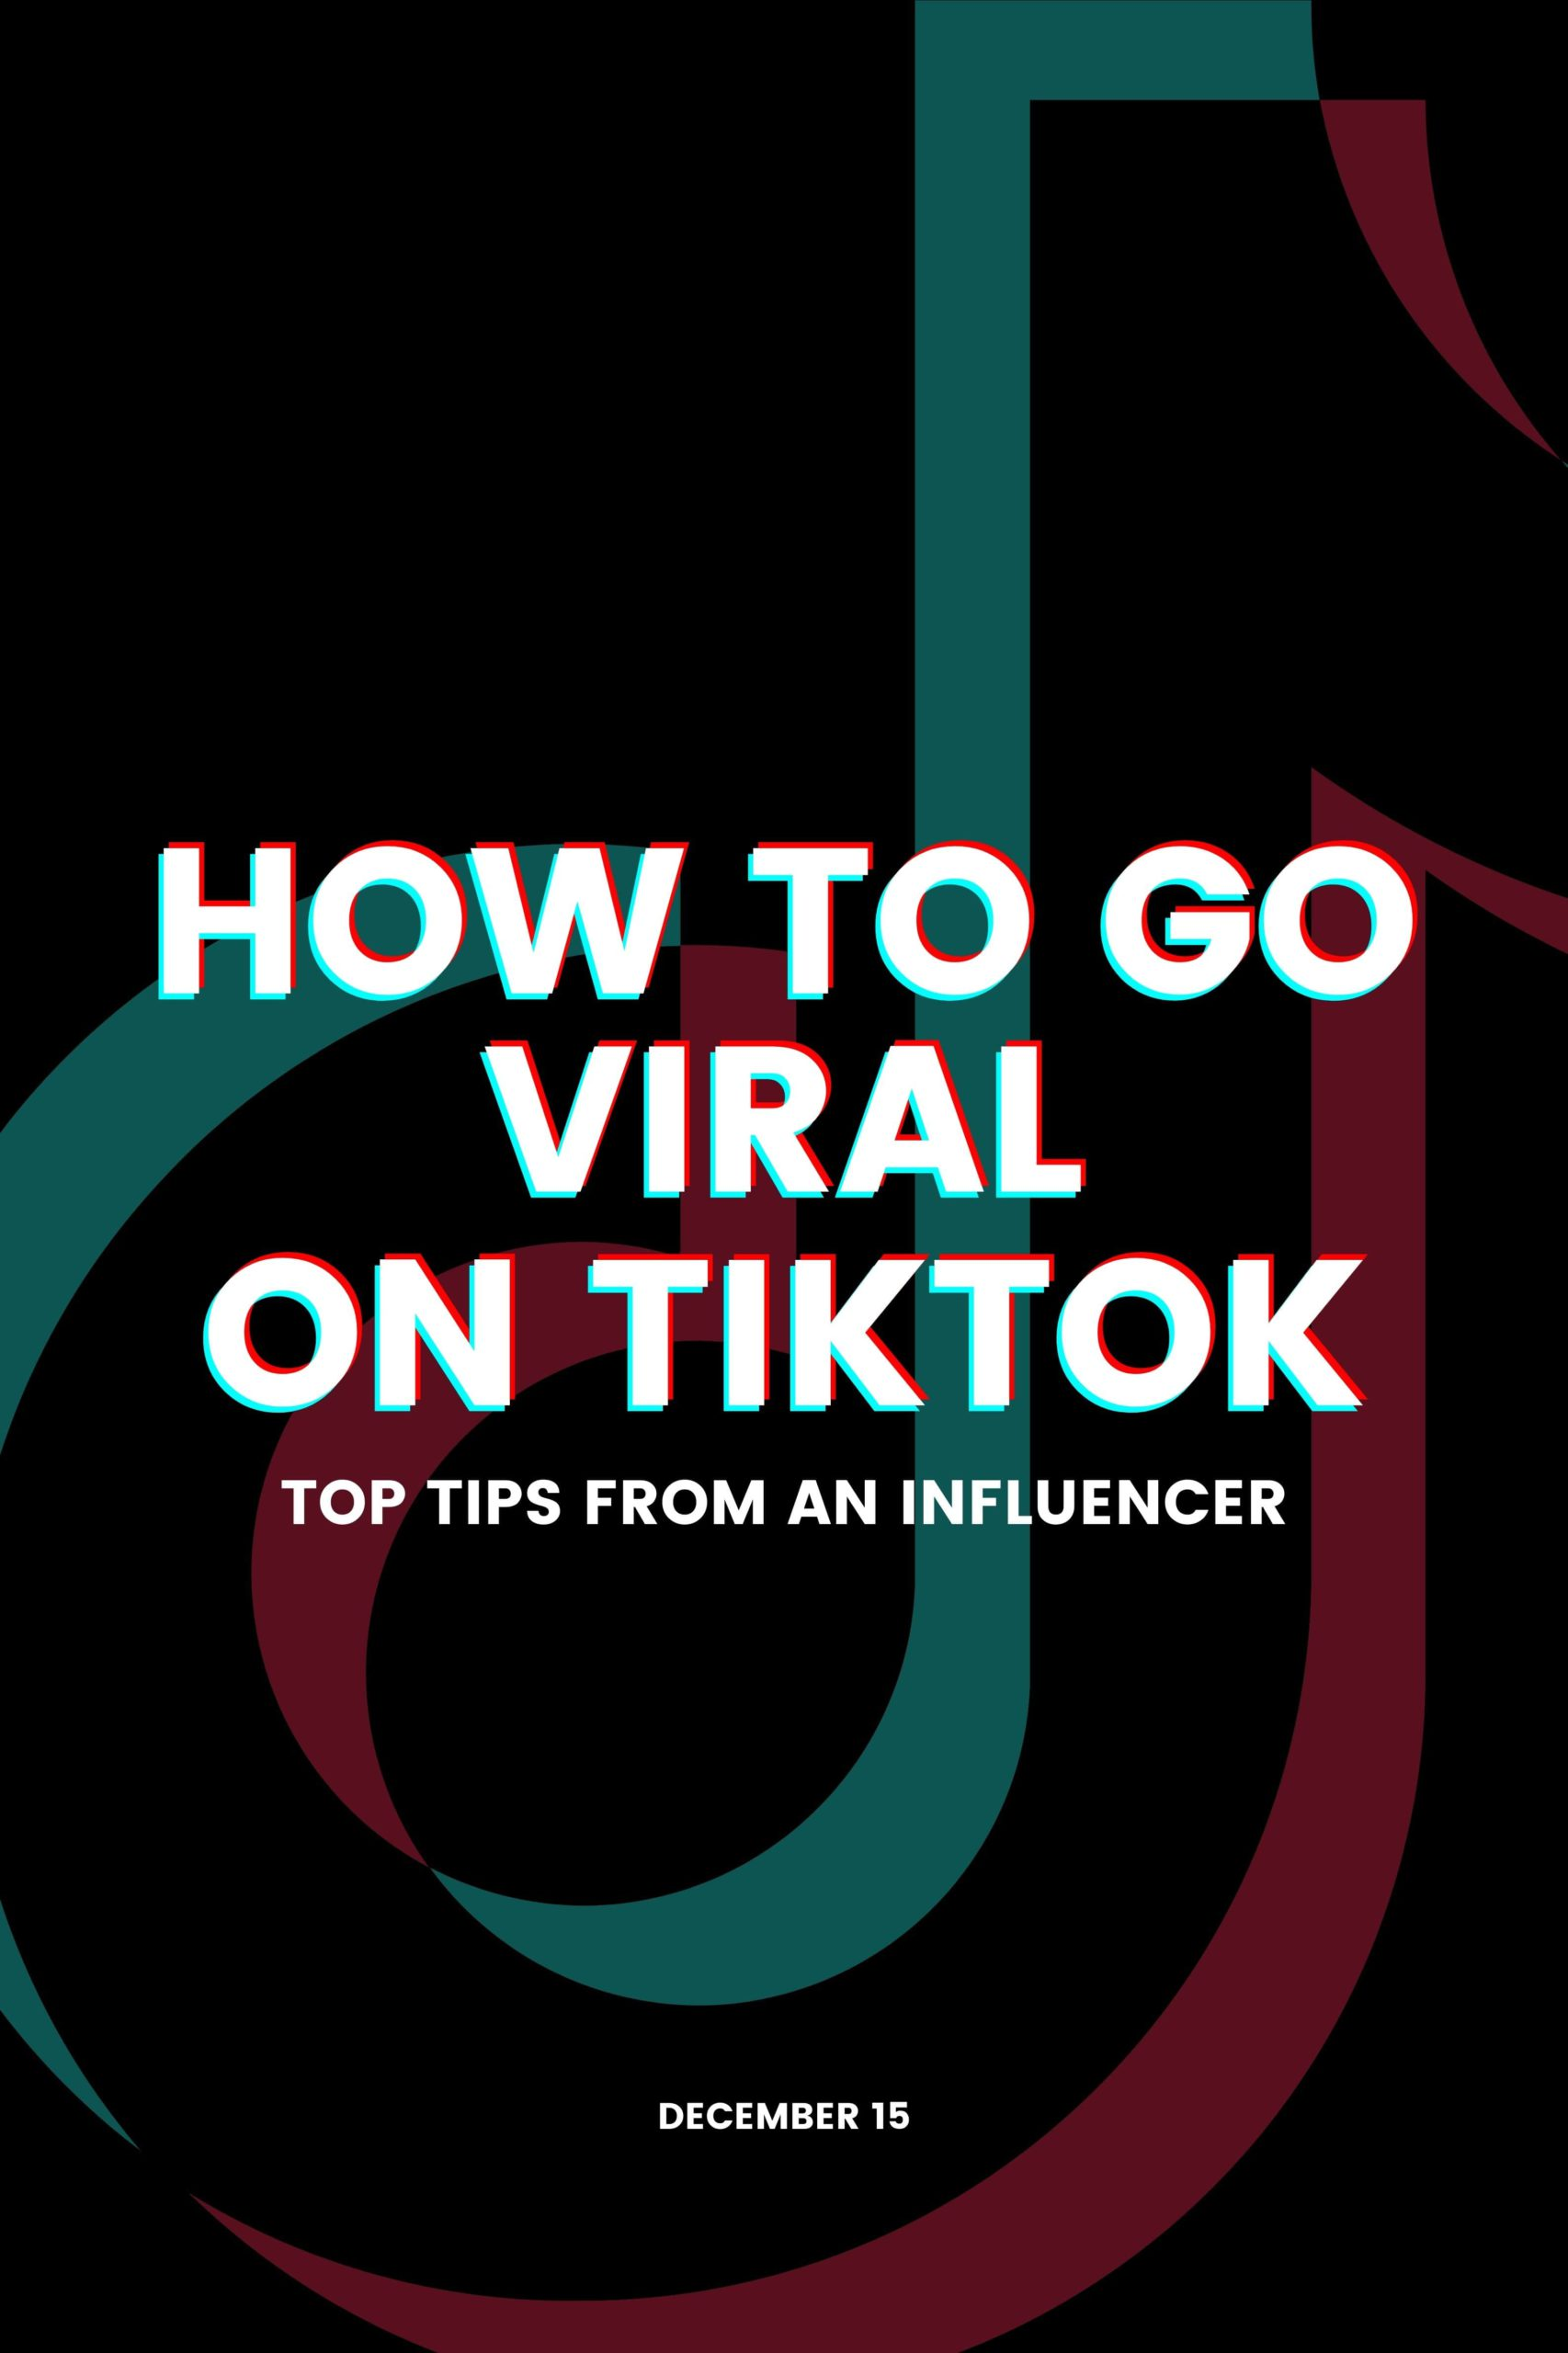 How to go viral on TikTok: Top tips from an influencer